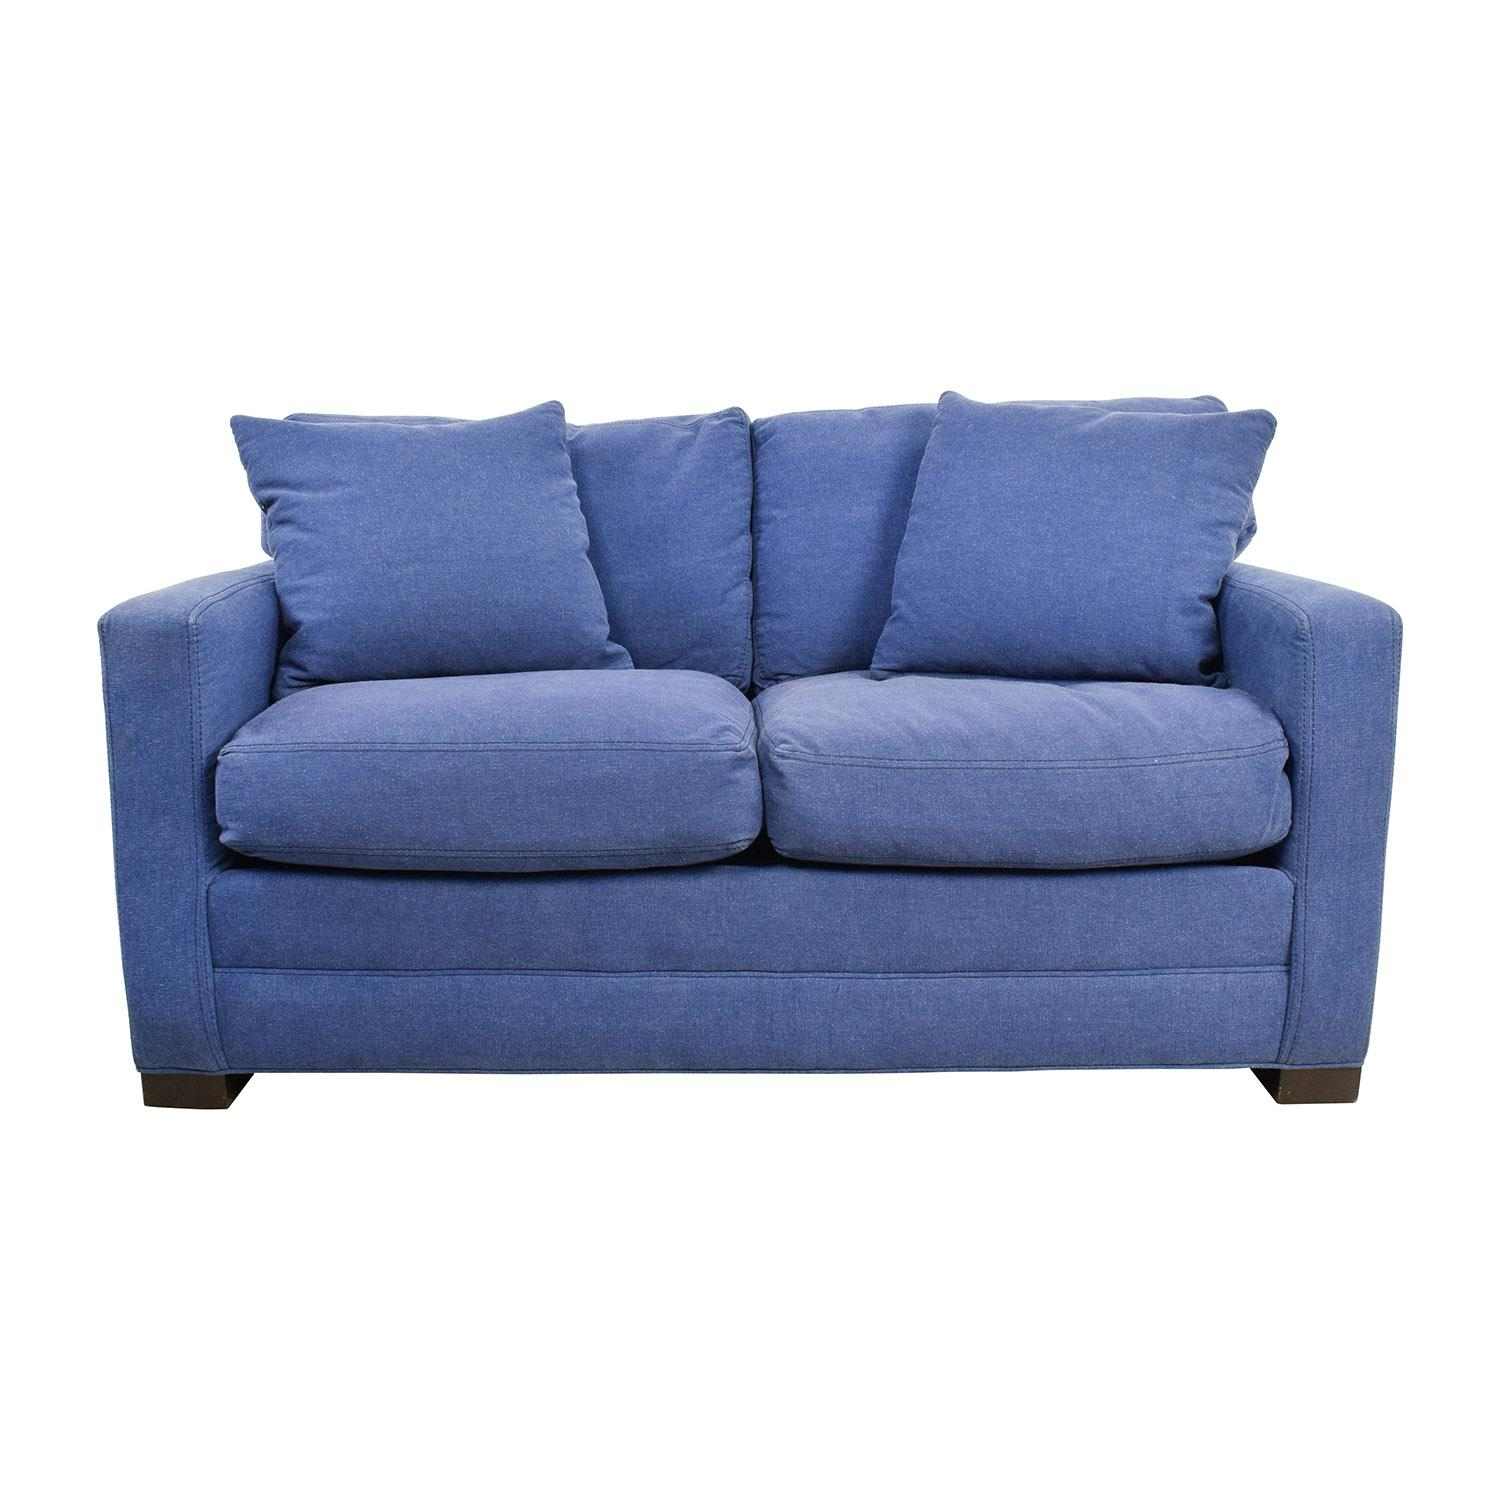 79% Off - Lee Industries Lee Industries Denim Blue Loveseat / Sofas pertaining to Denim Loveseats